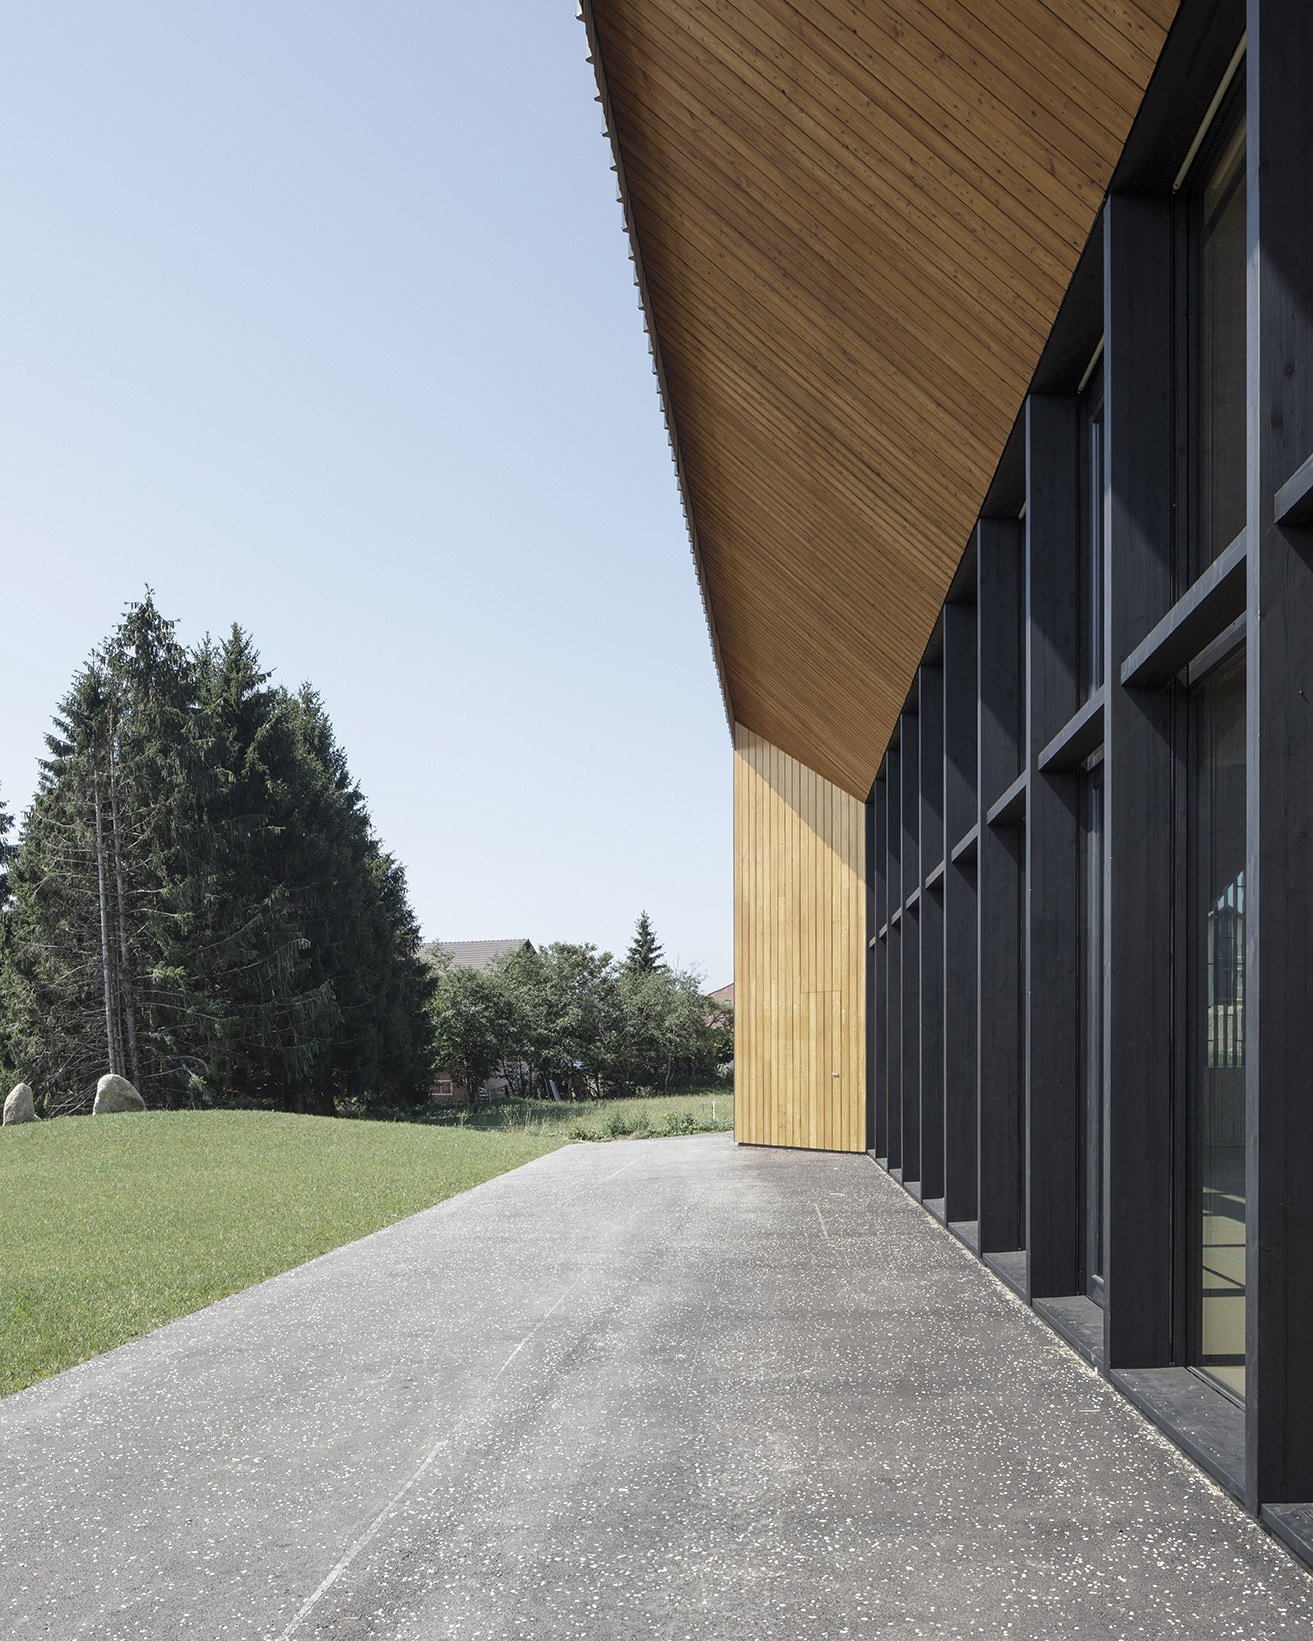 Polyvalent Hall in Le Vaud